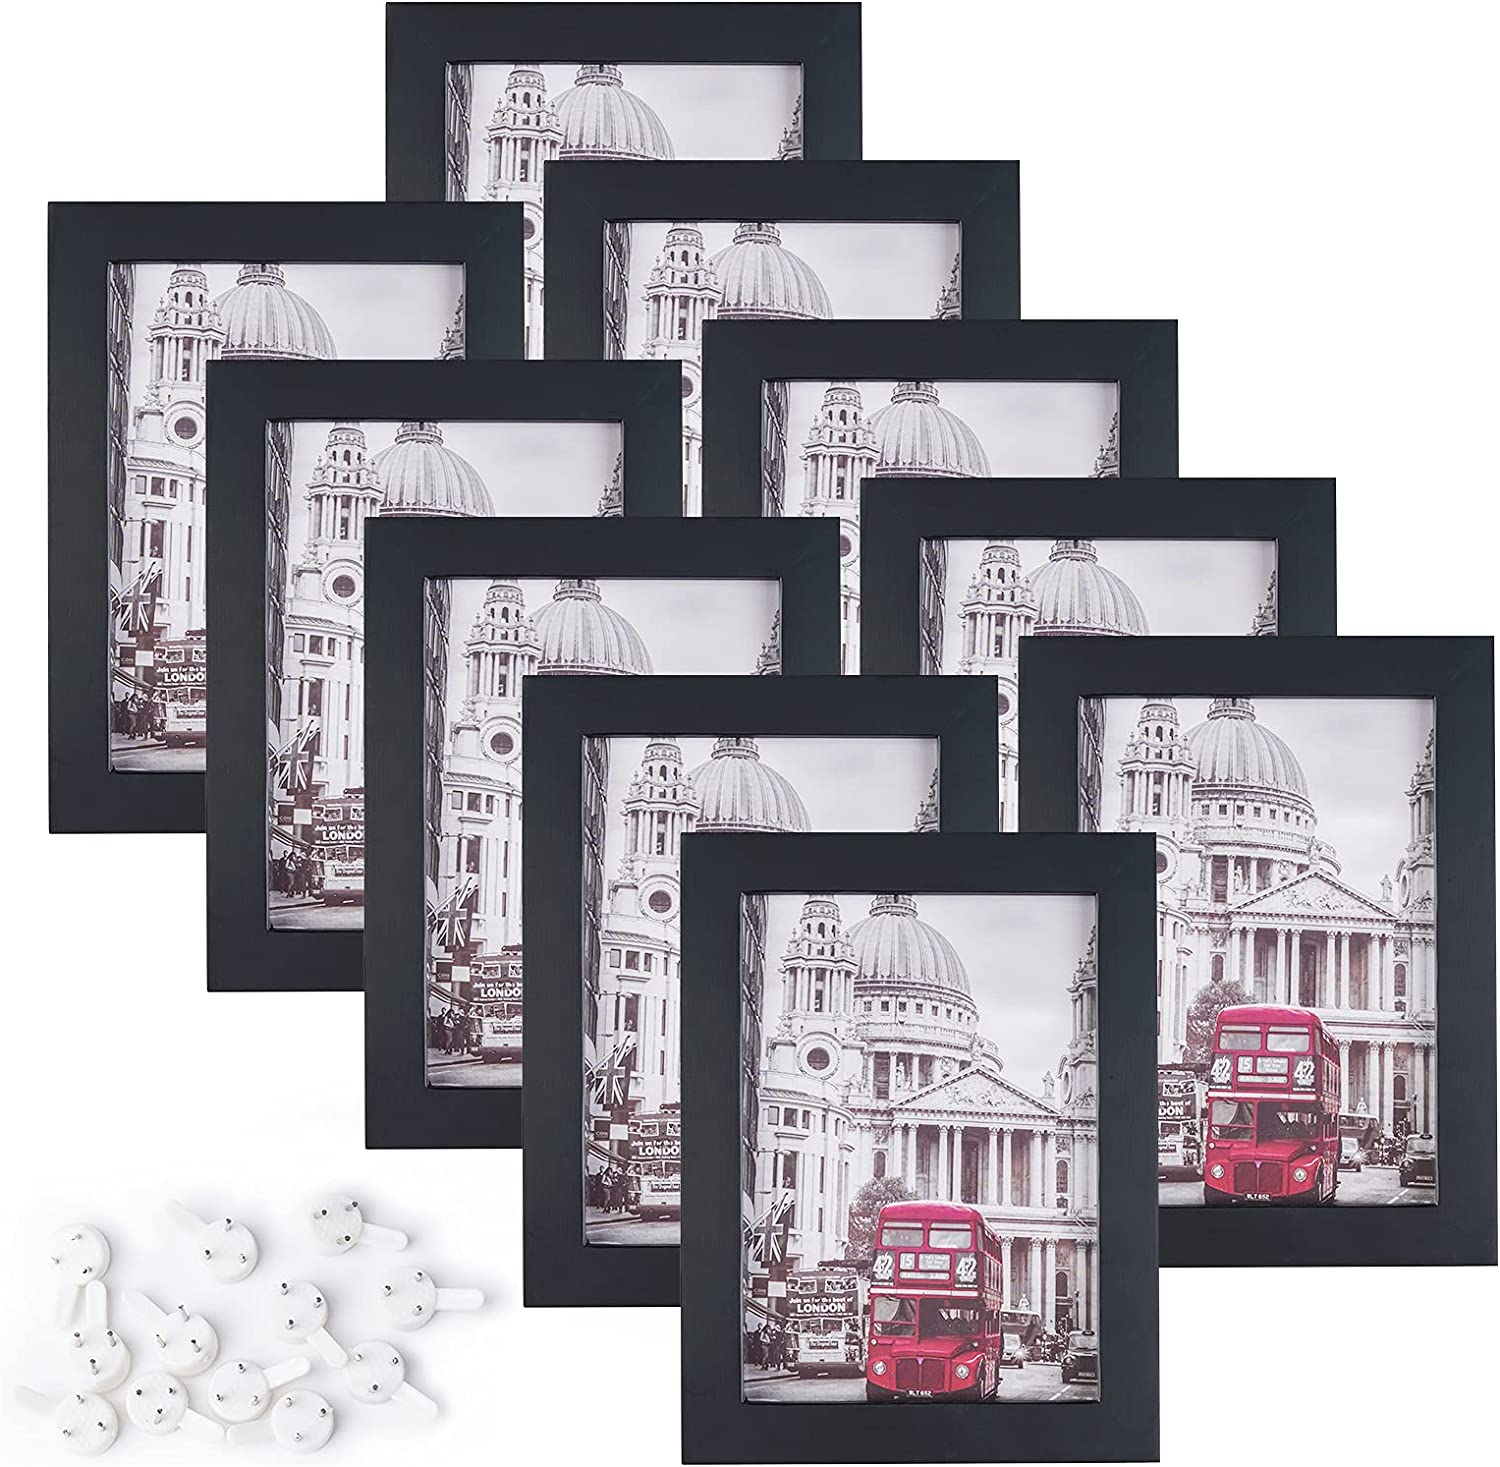 Charein 5x7 Picture Frame Set of wood 10 Tabl for Made Nashville-Davidson Mall New popularity solid